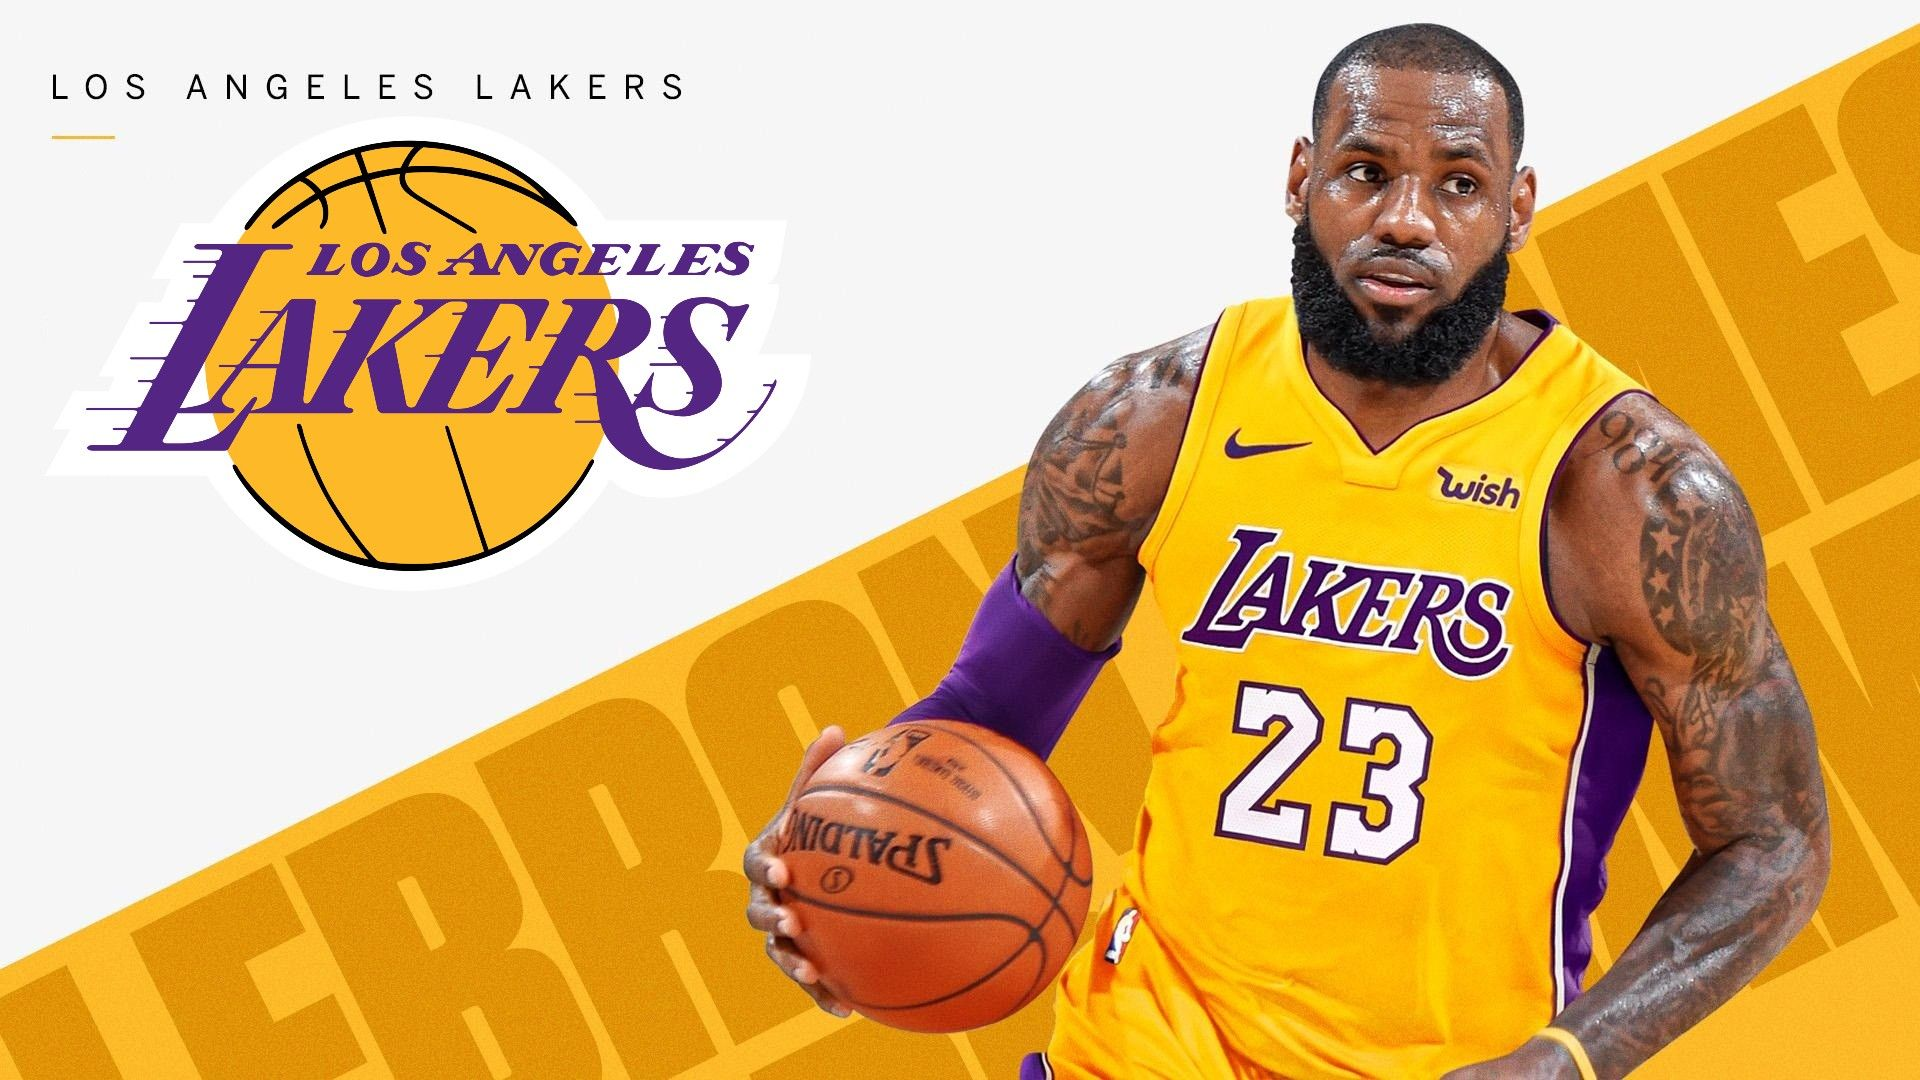 Lebron James Lakers Wallpaper Hd Lebron James Lakers Lakers Wallpaper Lebron James